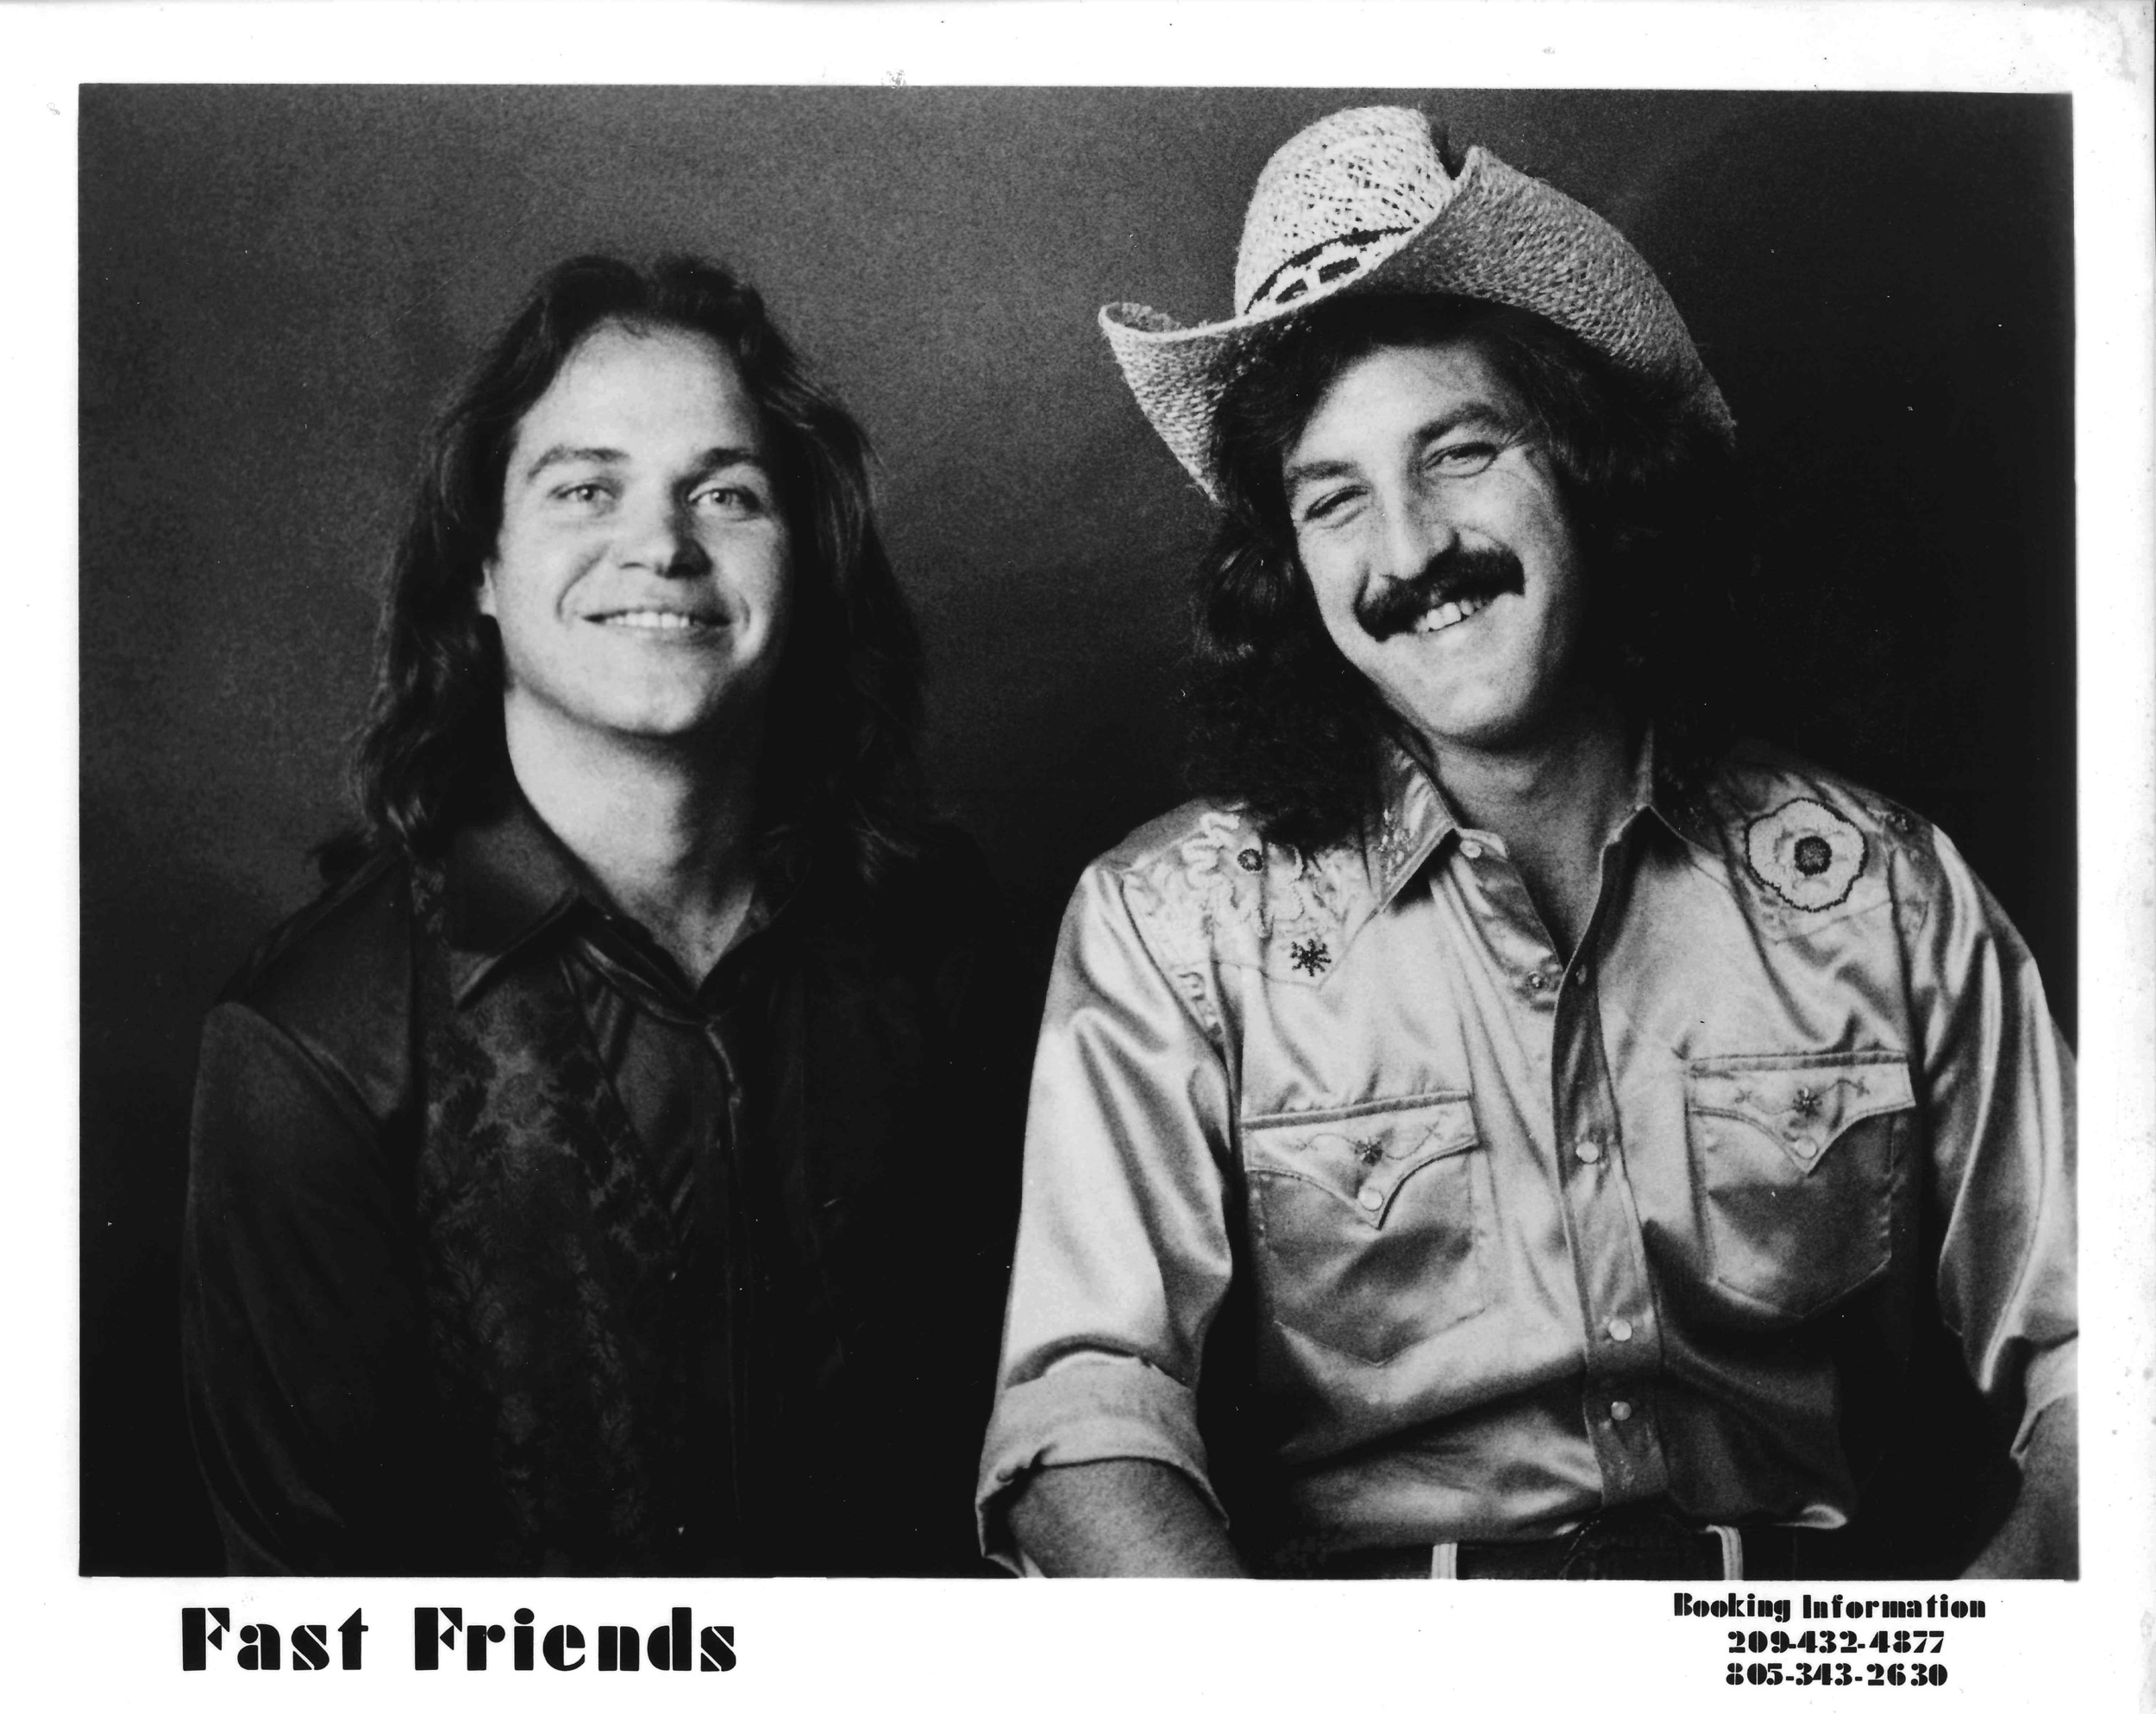 Fast Friends, Acoustic Duo - 1980